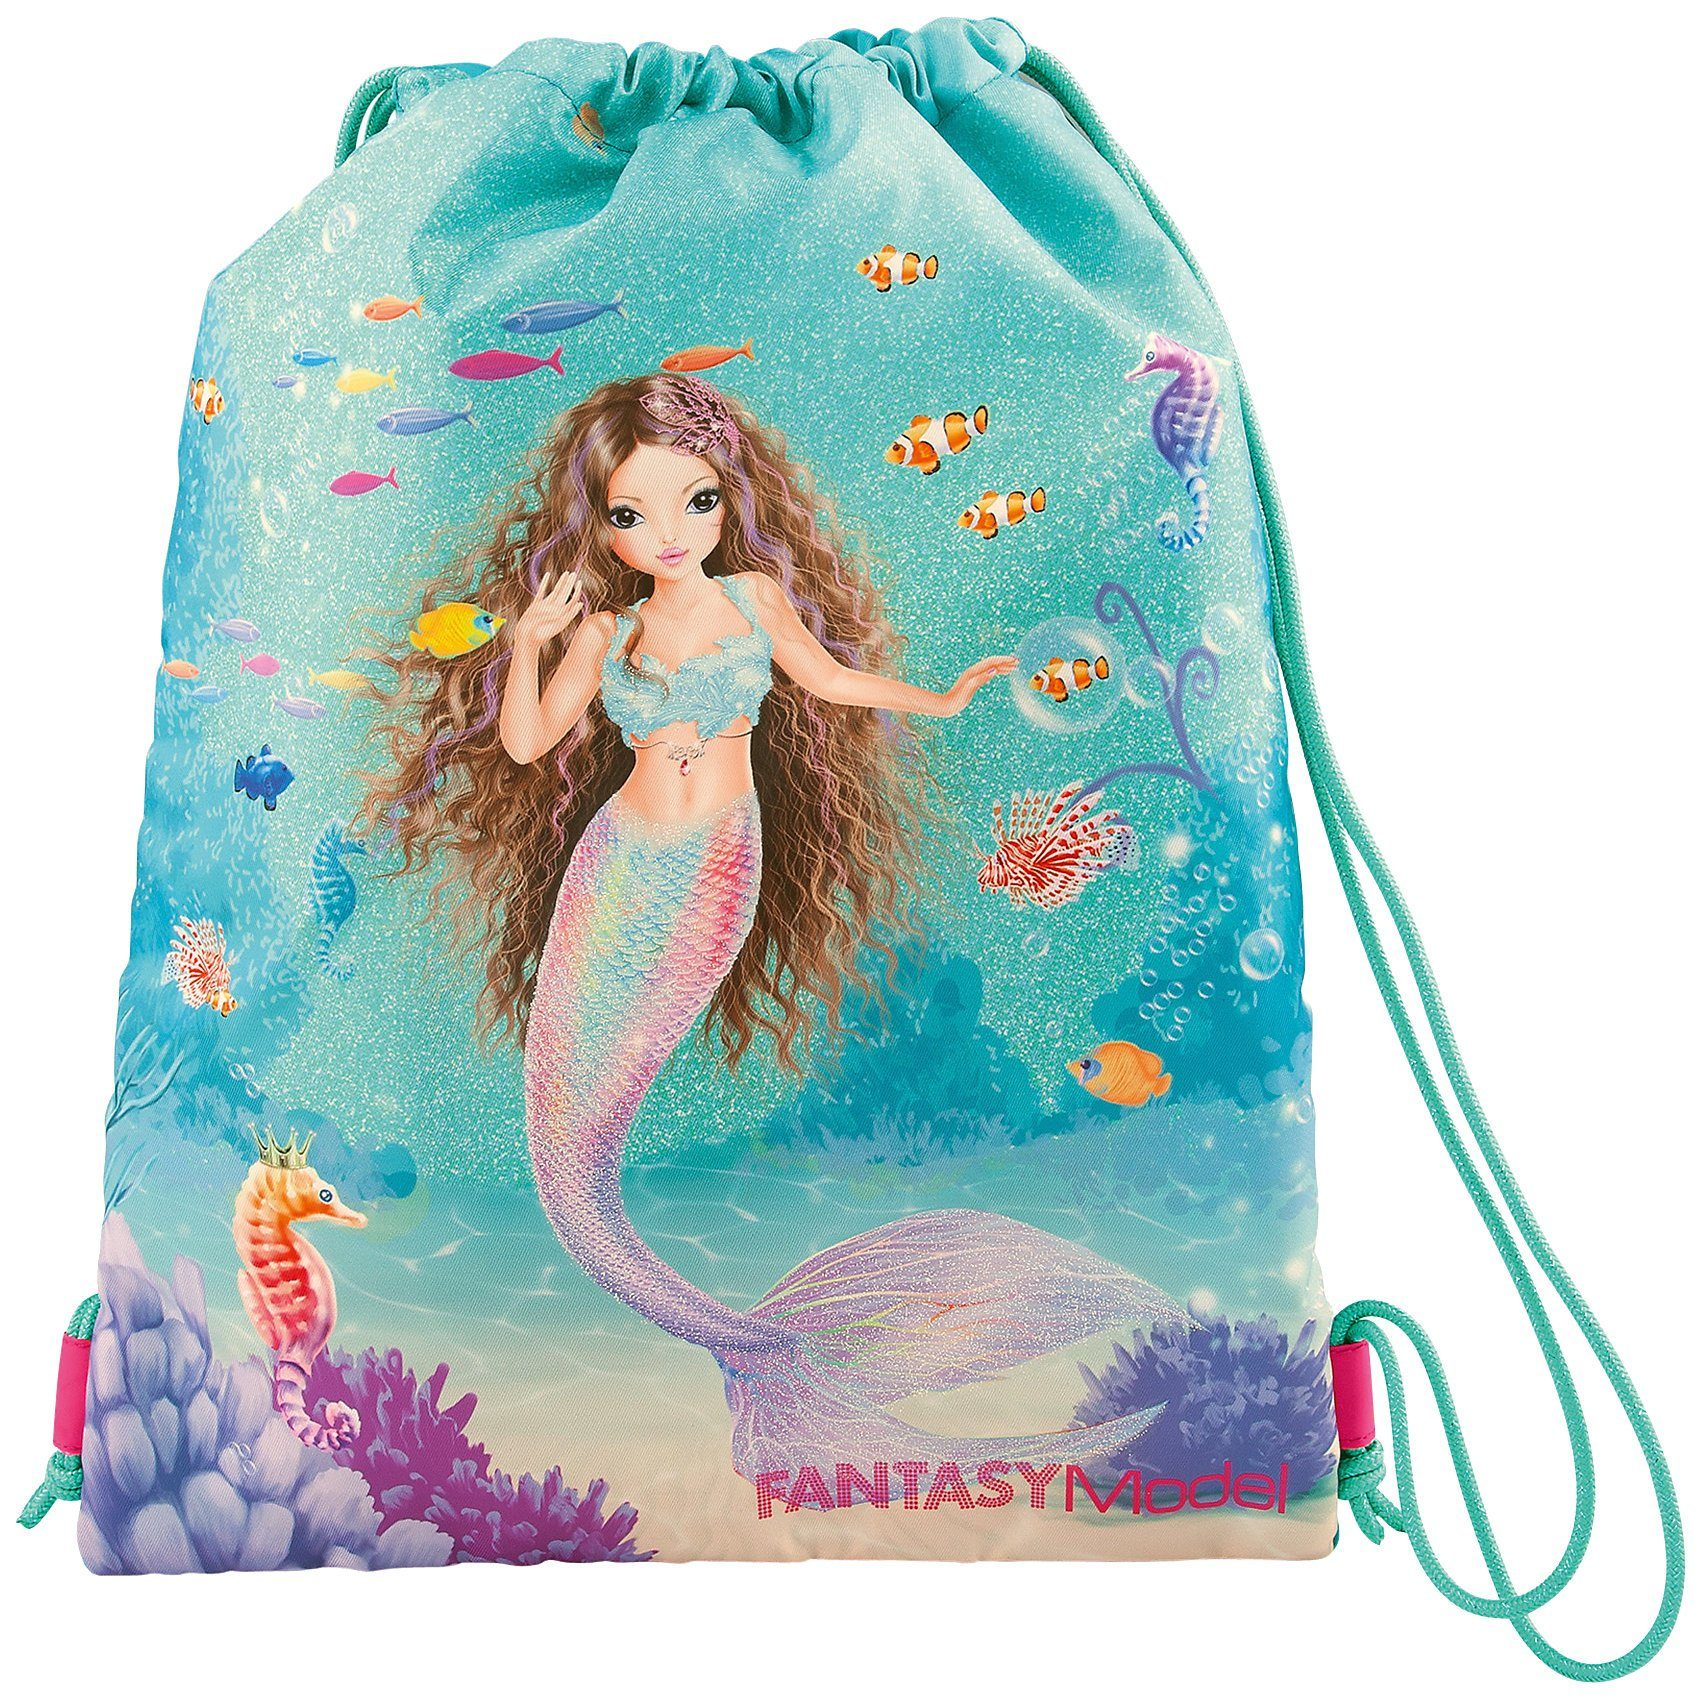 Depesche Fantasy Model Sportbeutel, Mermaid